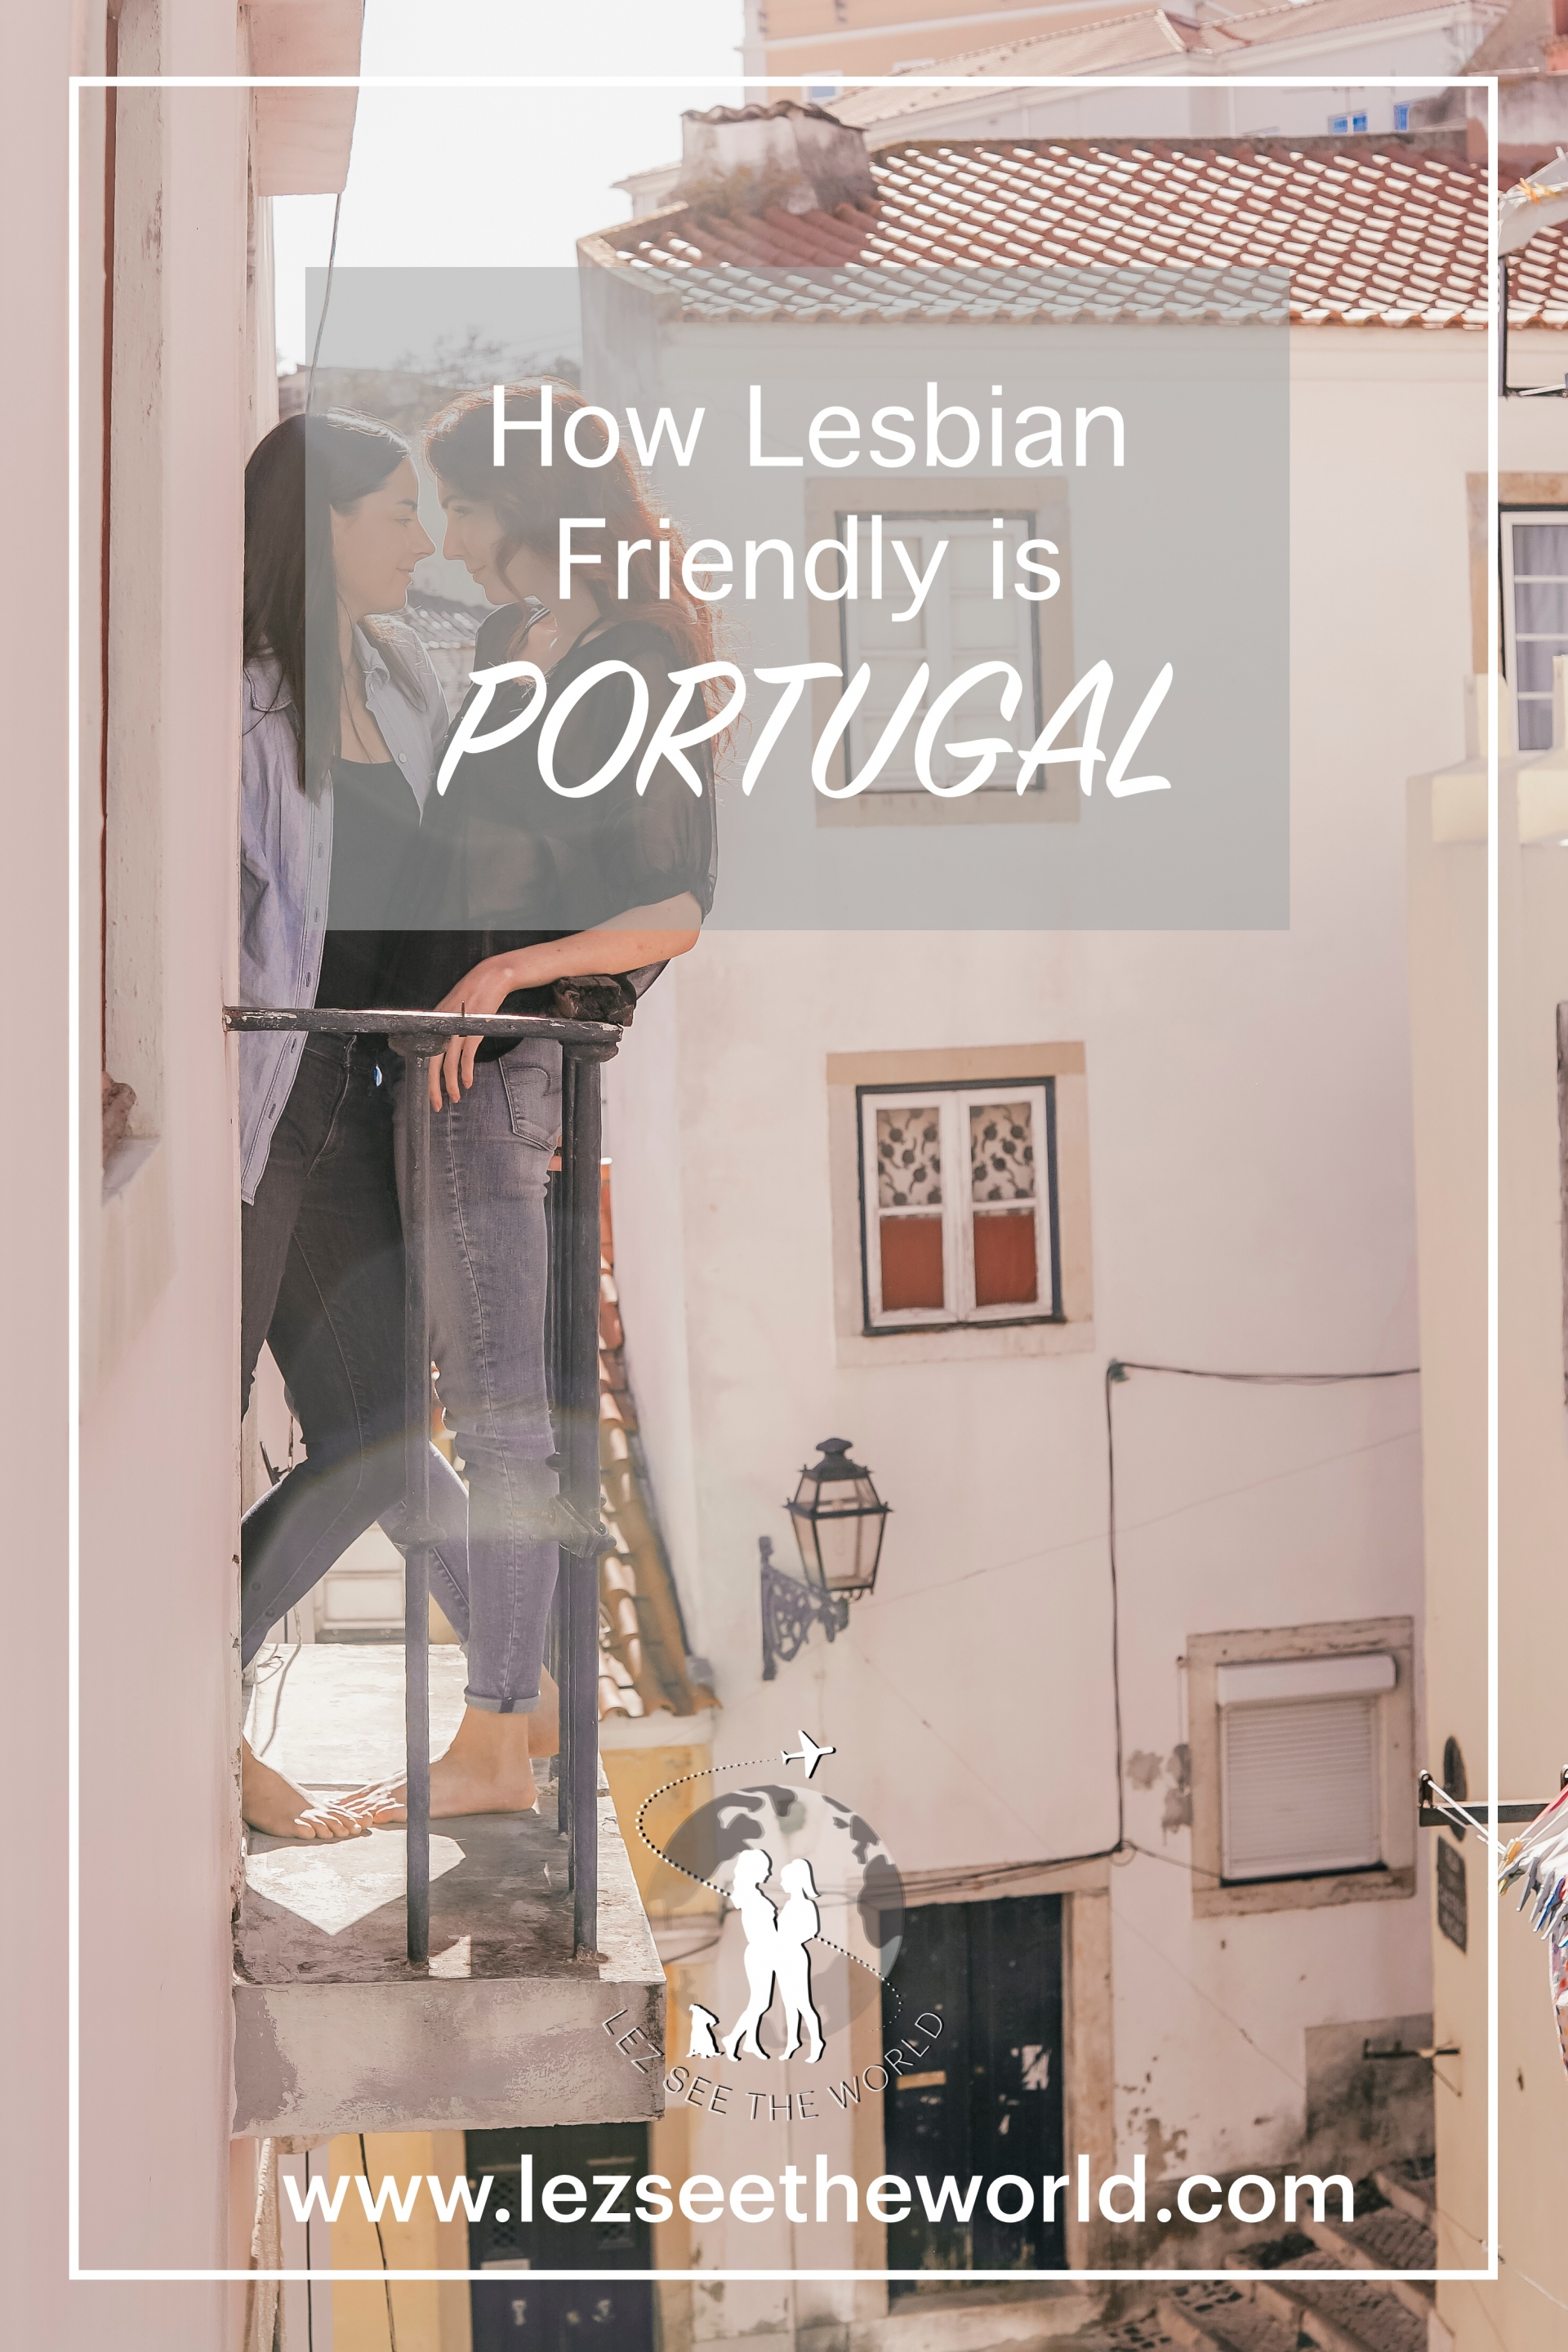 Portugal is the most gay friendly country in the world